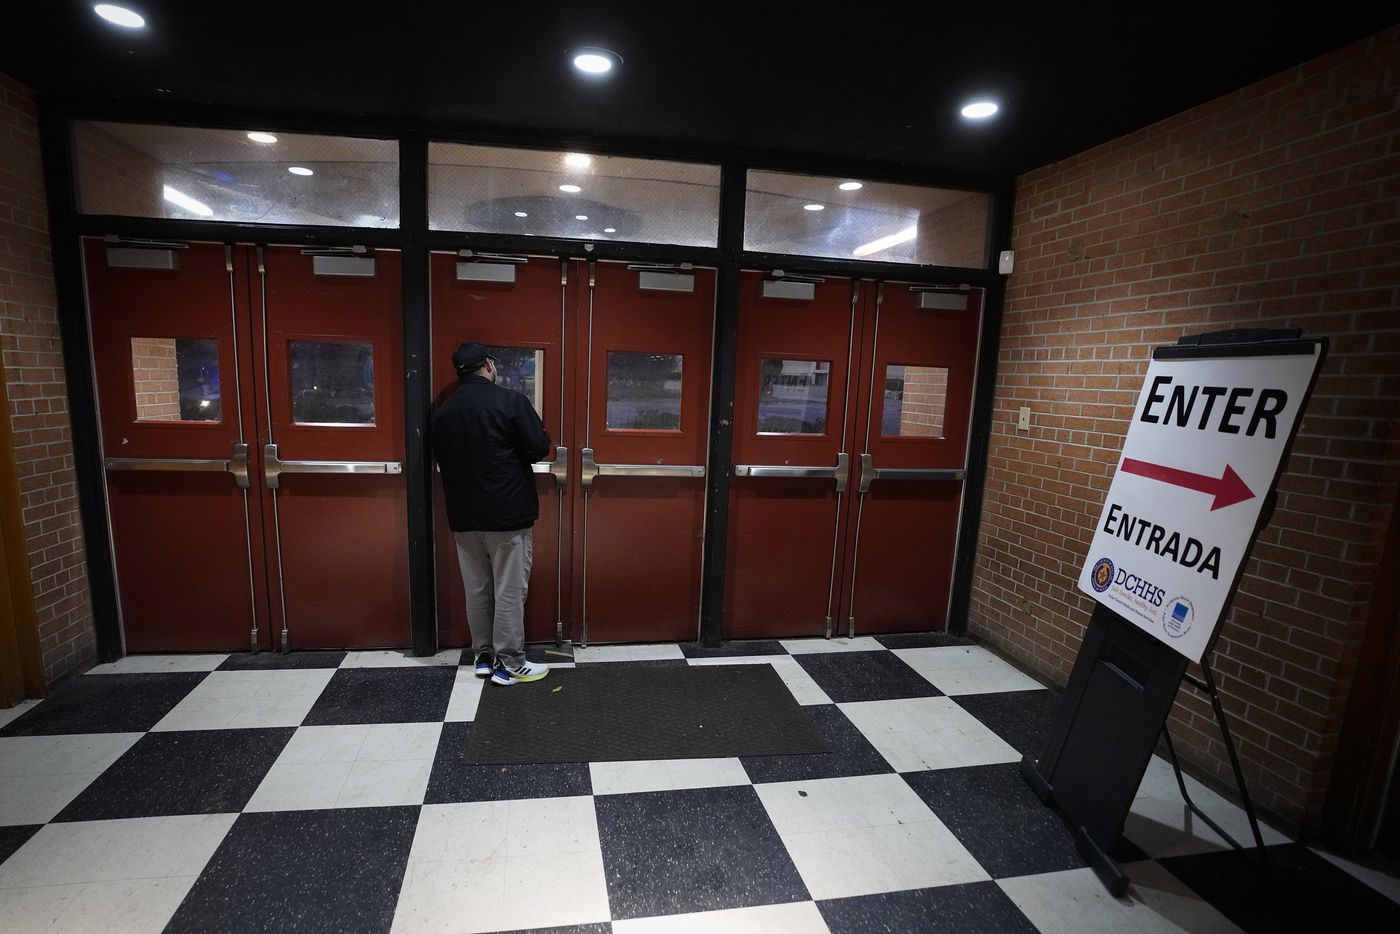 An employee of the Dallas County Department of Health and Human Services waits for people to open the door to receive the COVID-19 vaccine at Fair Park in Dallas on Monday, January 11, 2021. Dallas County launched its first